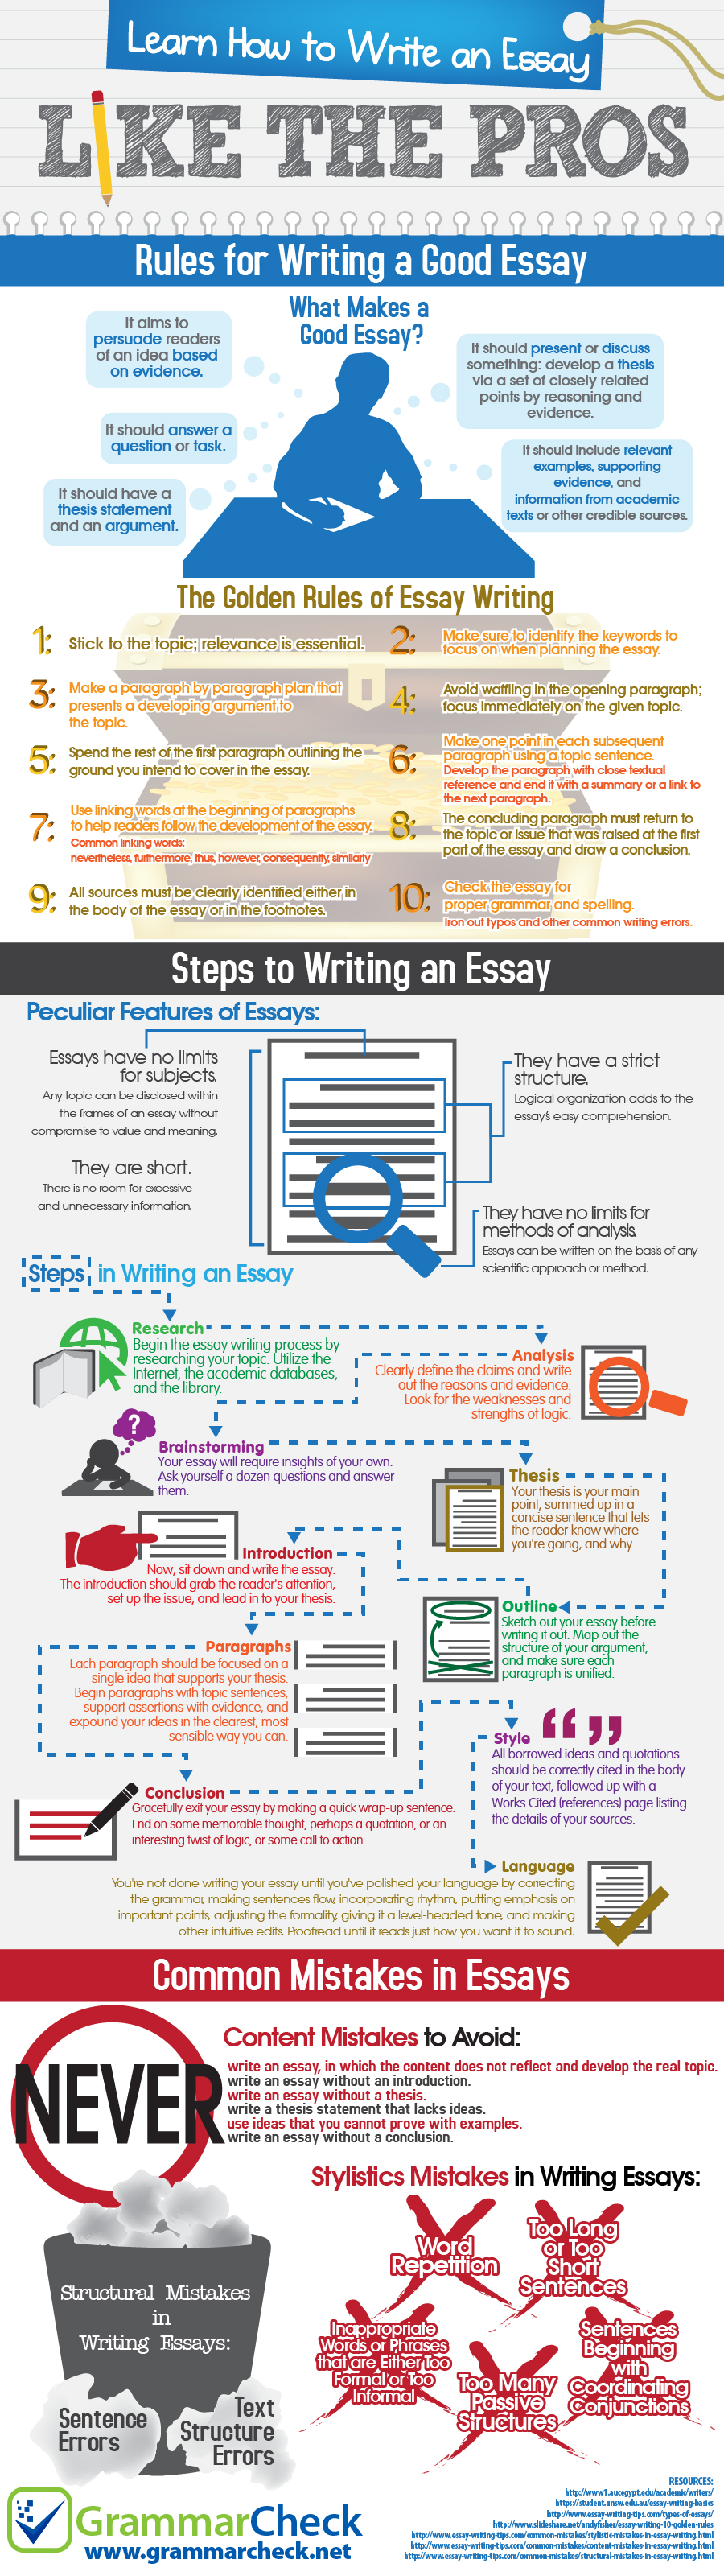 top 10 essay websites